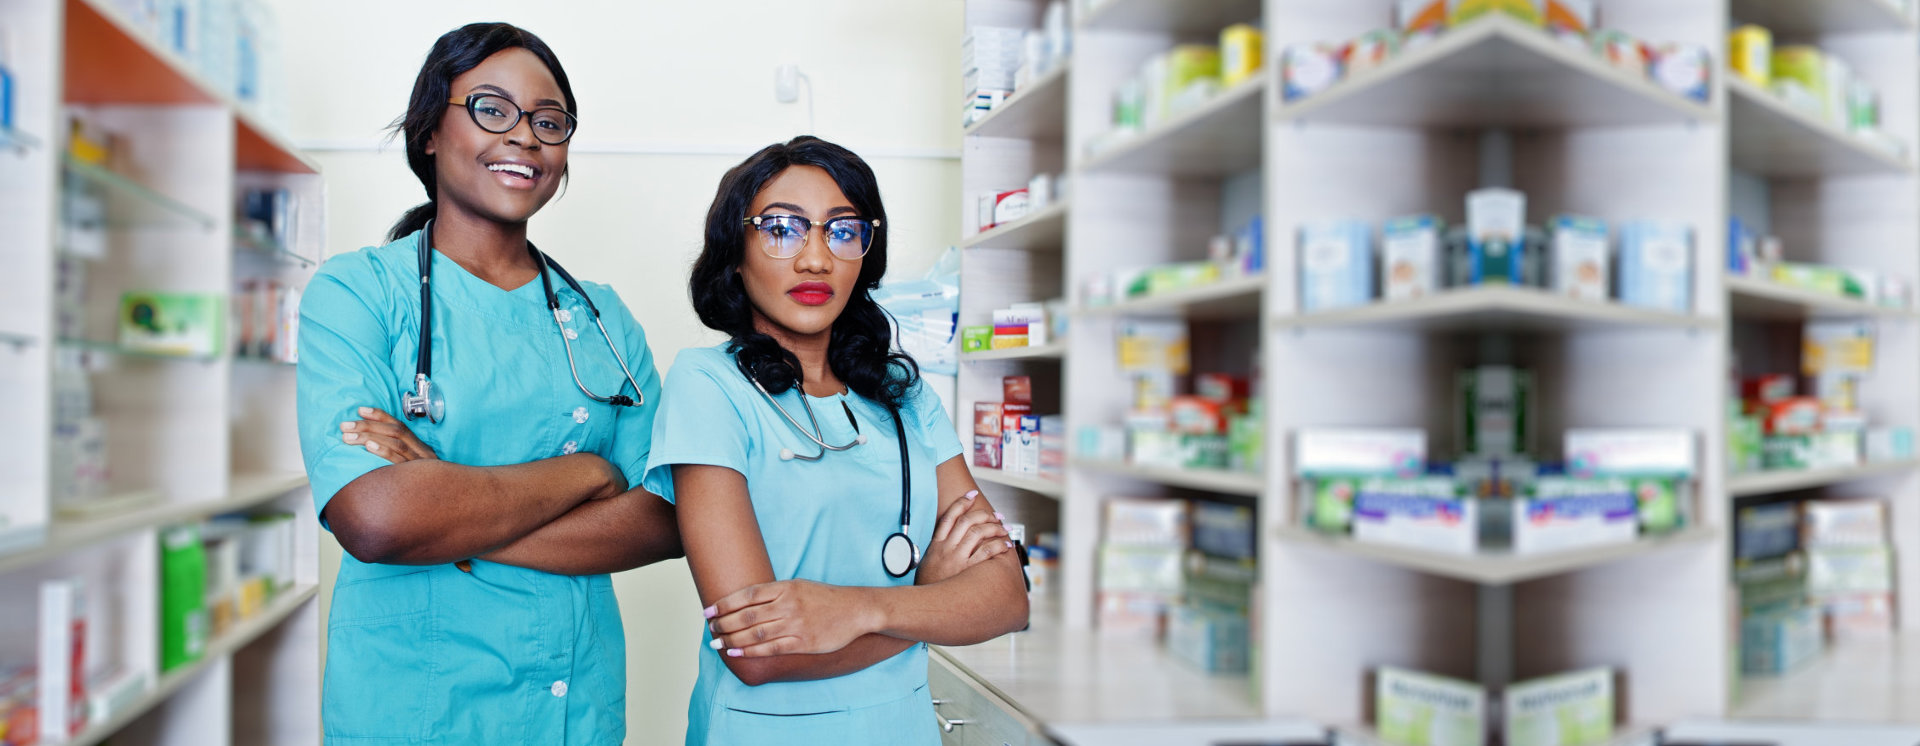 two medical personel with stethoscope with pharmacy products on background